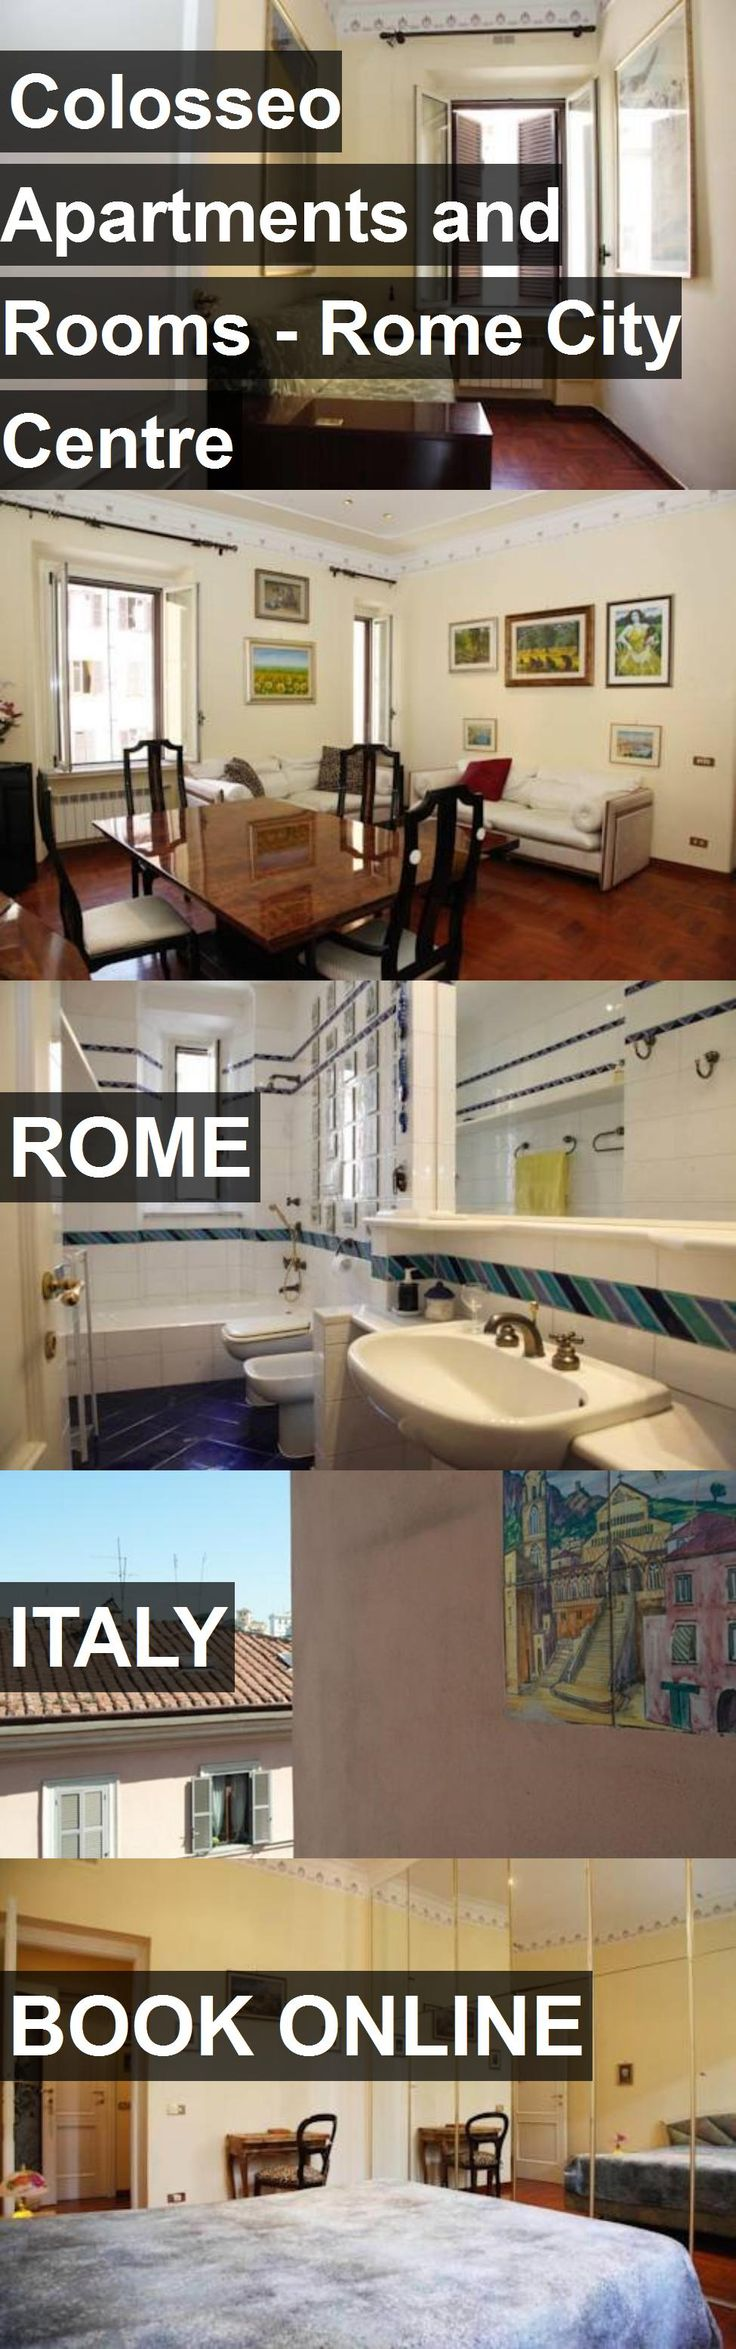 Hotel Colosseo Apartments and Rooms - Rome City Centre in Rome, Italy. For more information, photos, reviews and best prices please follow the link. #Italy #Rome #ColosseoApartmentsandRooms-RomeCityCentre #hotel #travel #vacation